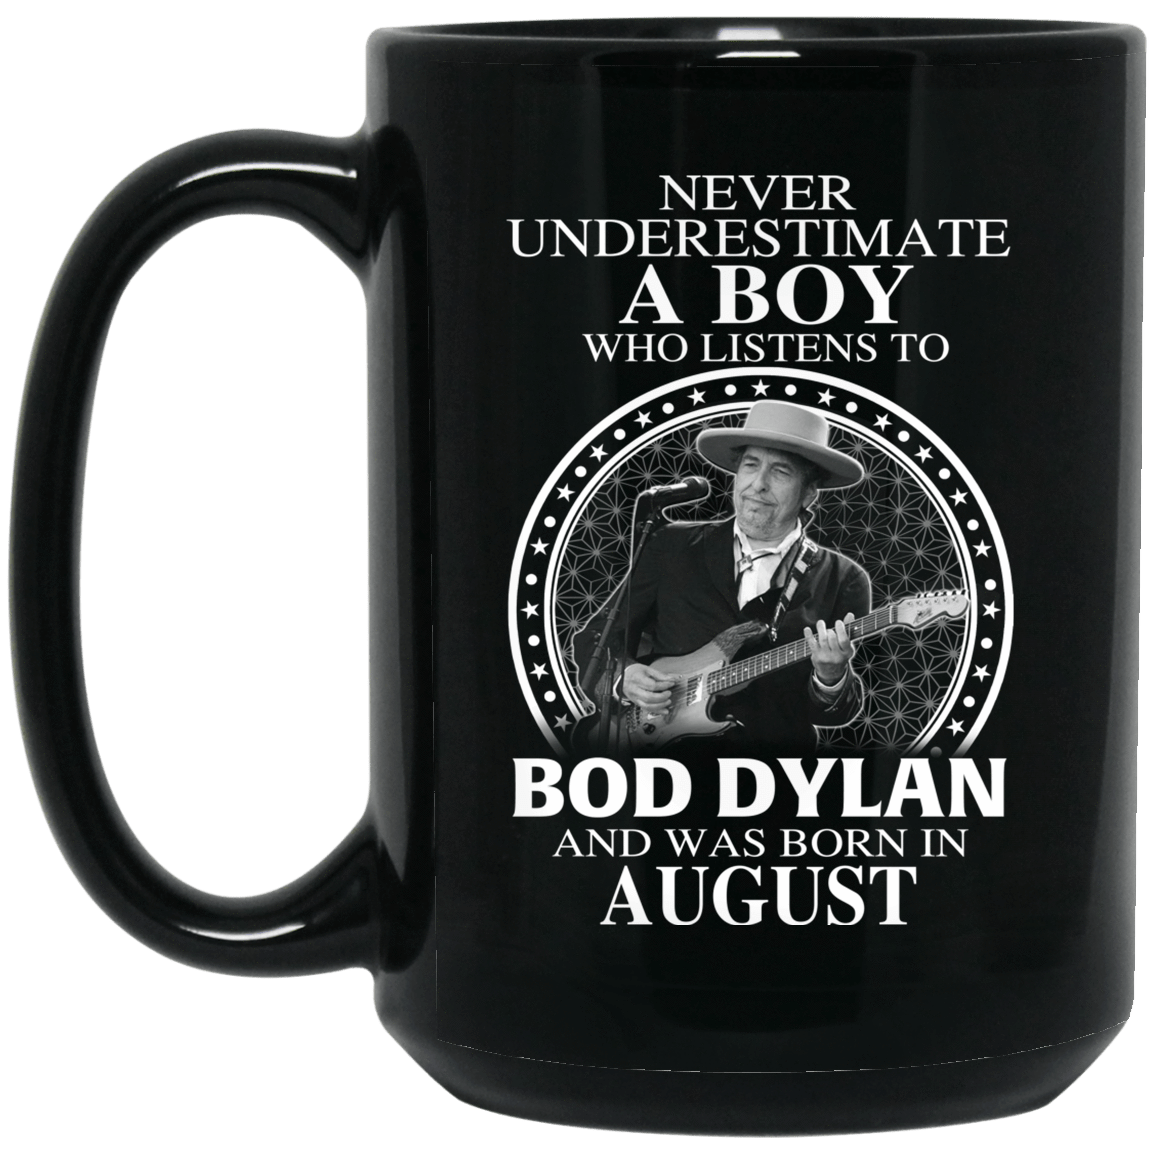 A Boy Who Listens To Bob Dylan And Was Born In August Mug 1066-10182-76154931-49311 - Tee Ript